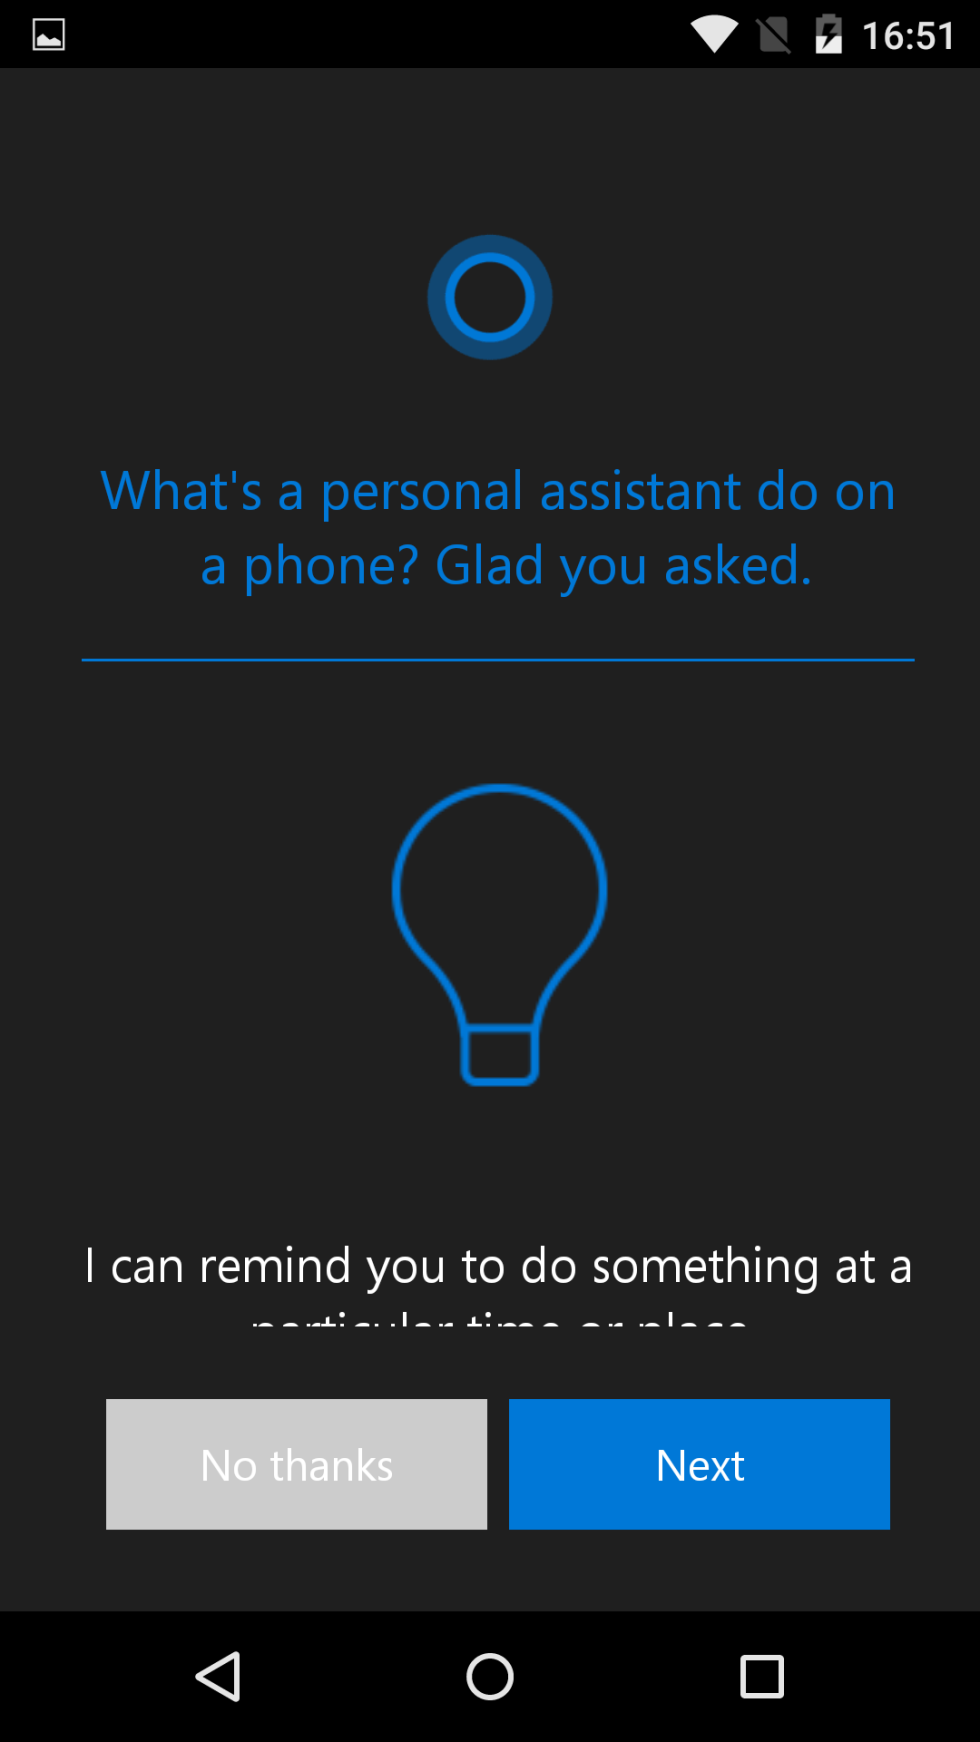 Cortana For Android App Got Leaked And Here's What to Expect When It Launches